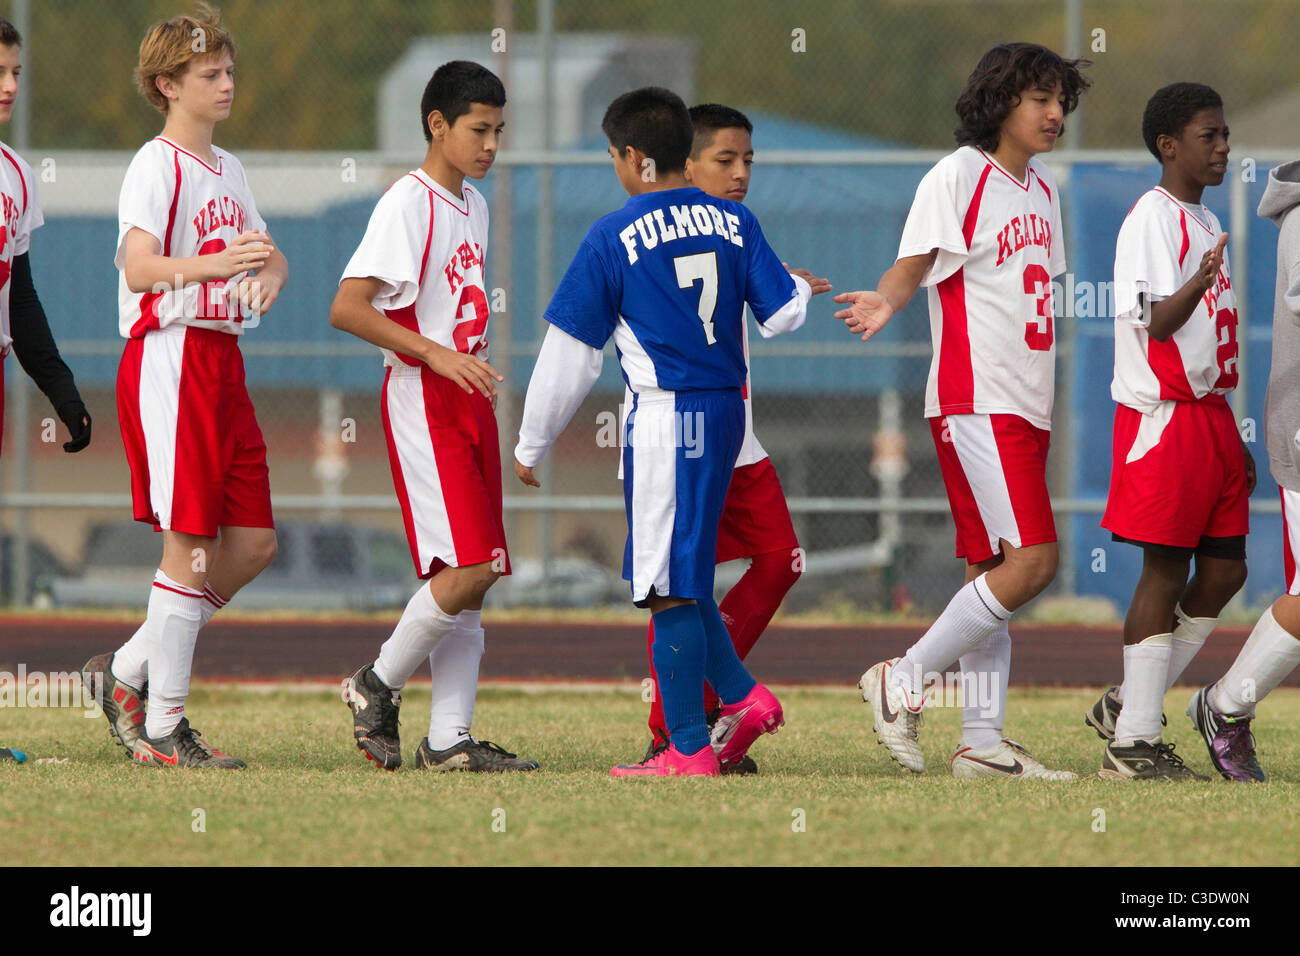 Anglo, Hispanic and African-American players from opposing teams slap hands after middle school boys' soccer - Stock Image